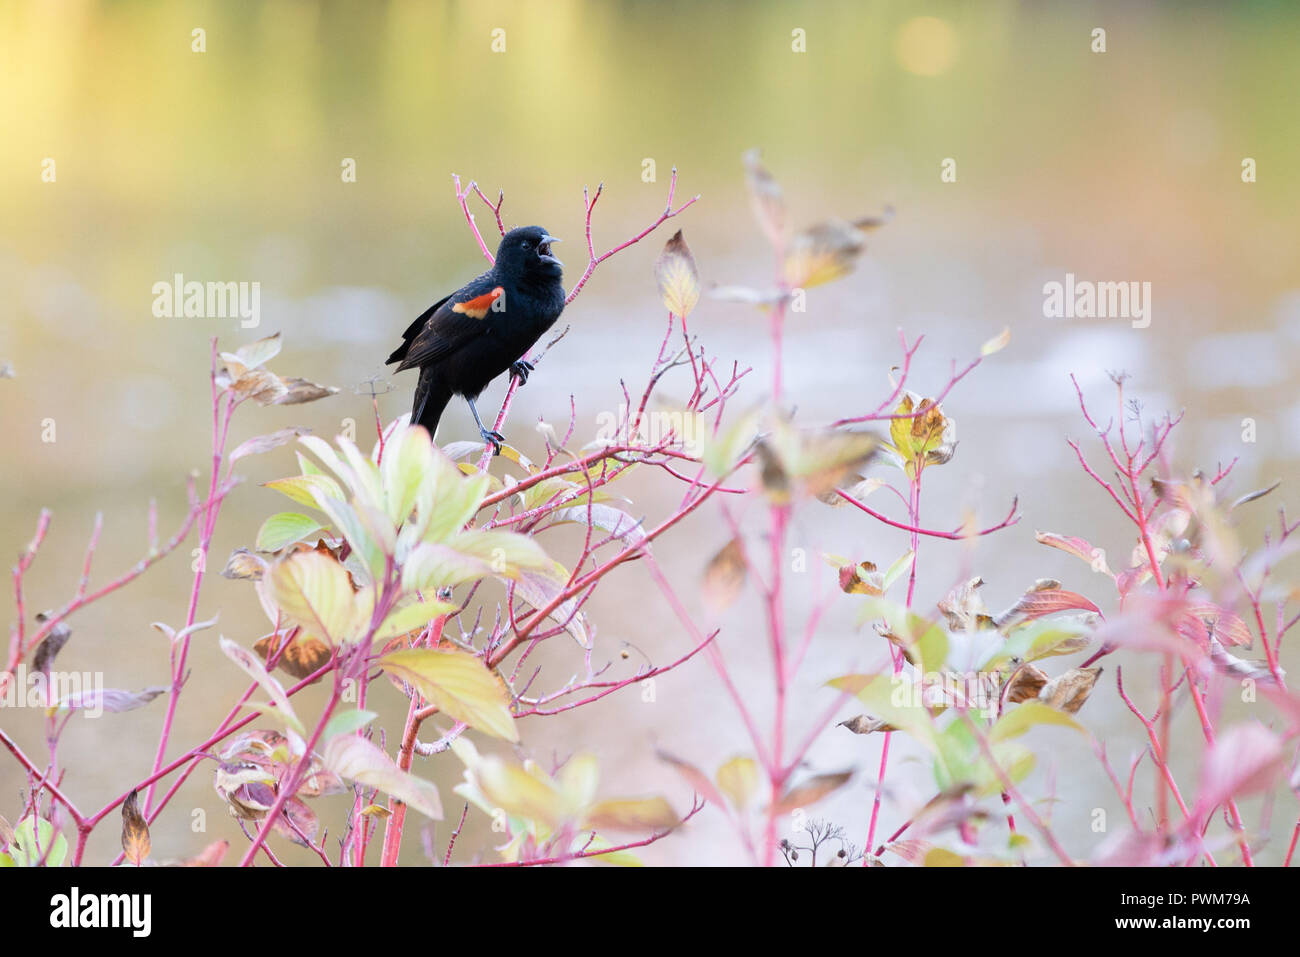 Red wing blackbird (agelaius phoeniceus) singing on a tree branch during autumn season. Lake in the background. - Stock Image